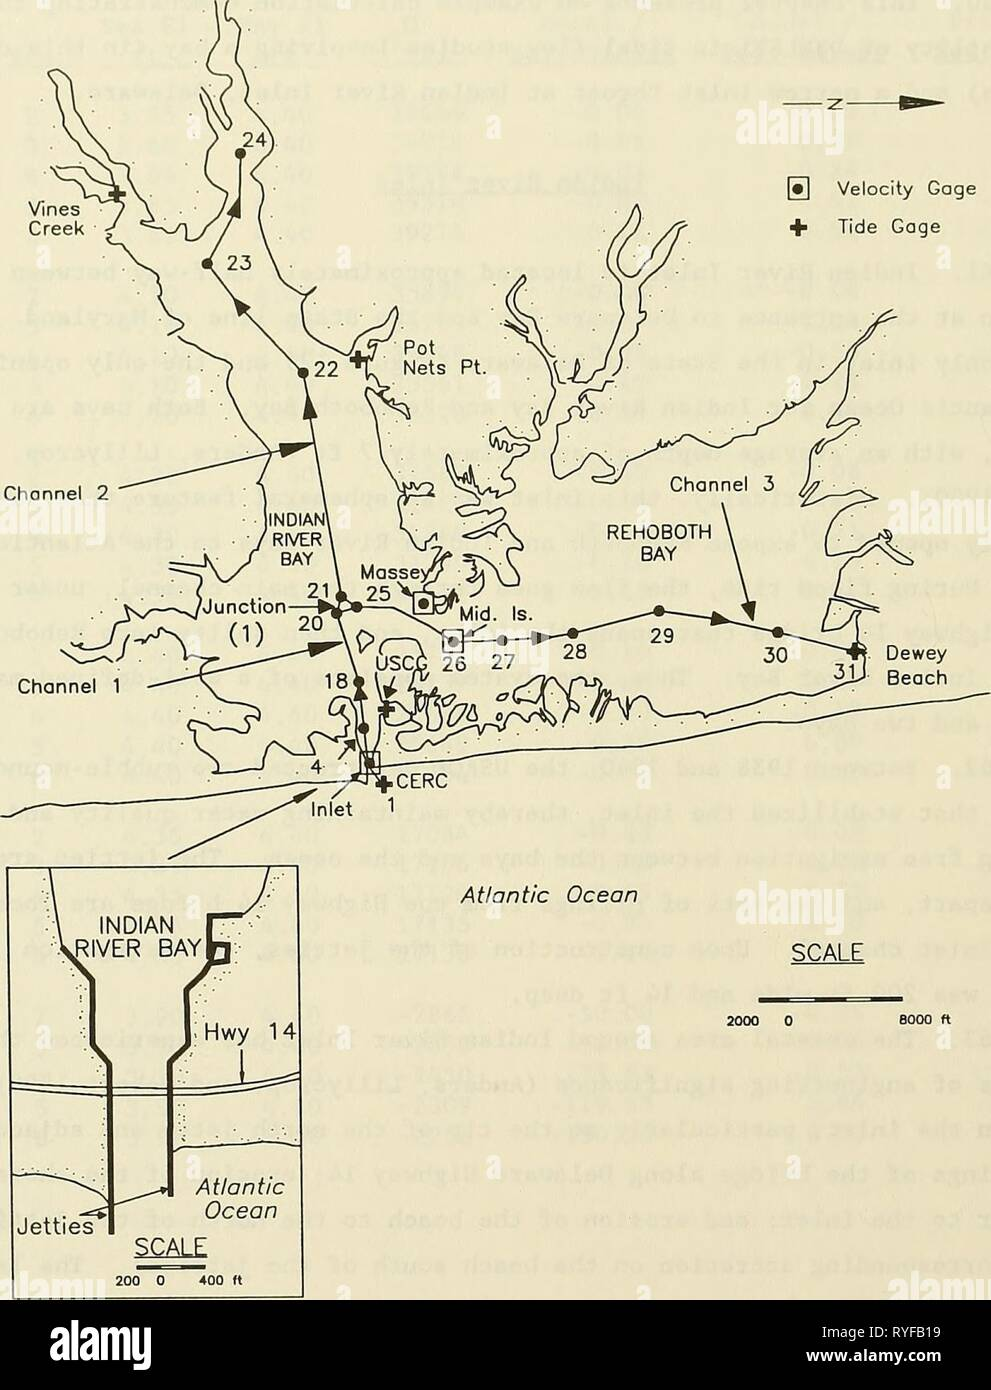 DYNLET1 : dynamic implicit numerical model of one-dimensional tidal flow through inlets  dynlet1dynamicim00amei Year: 1991    Figure 12. Schematic plan for Indian River Inlet 66 Stock Photo